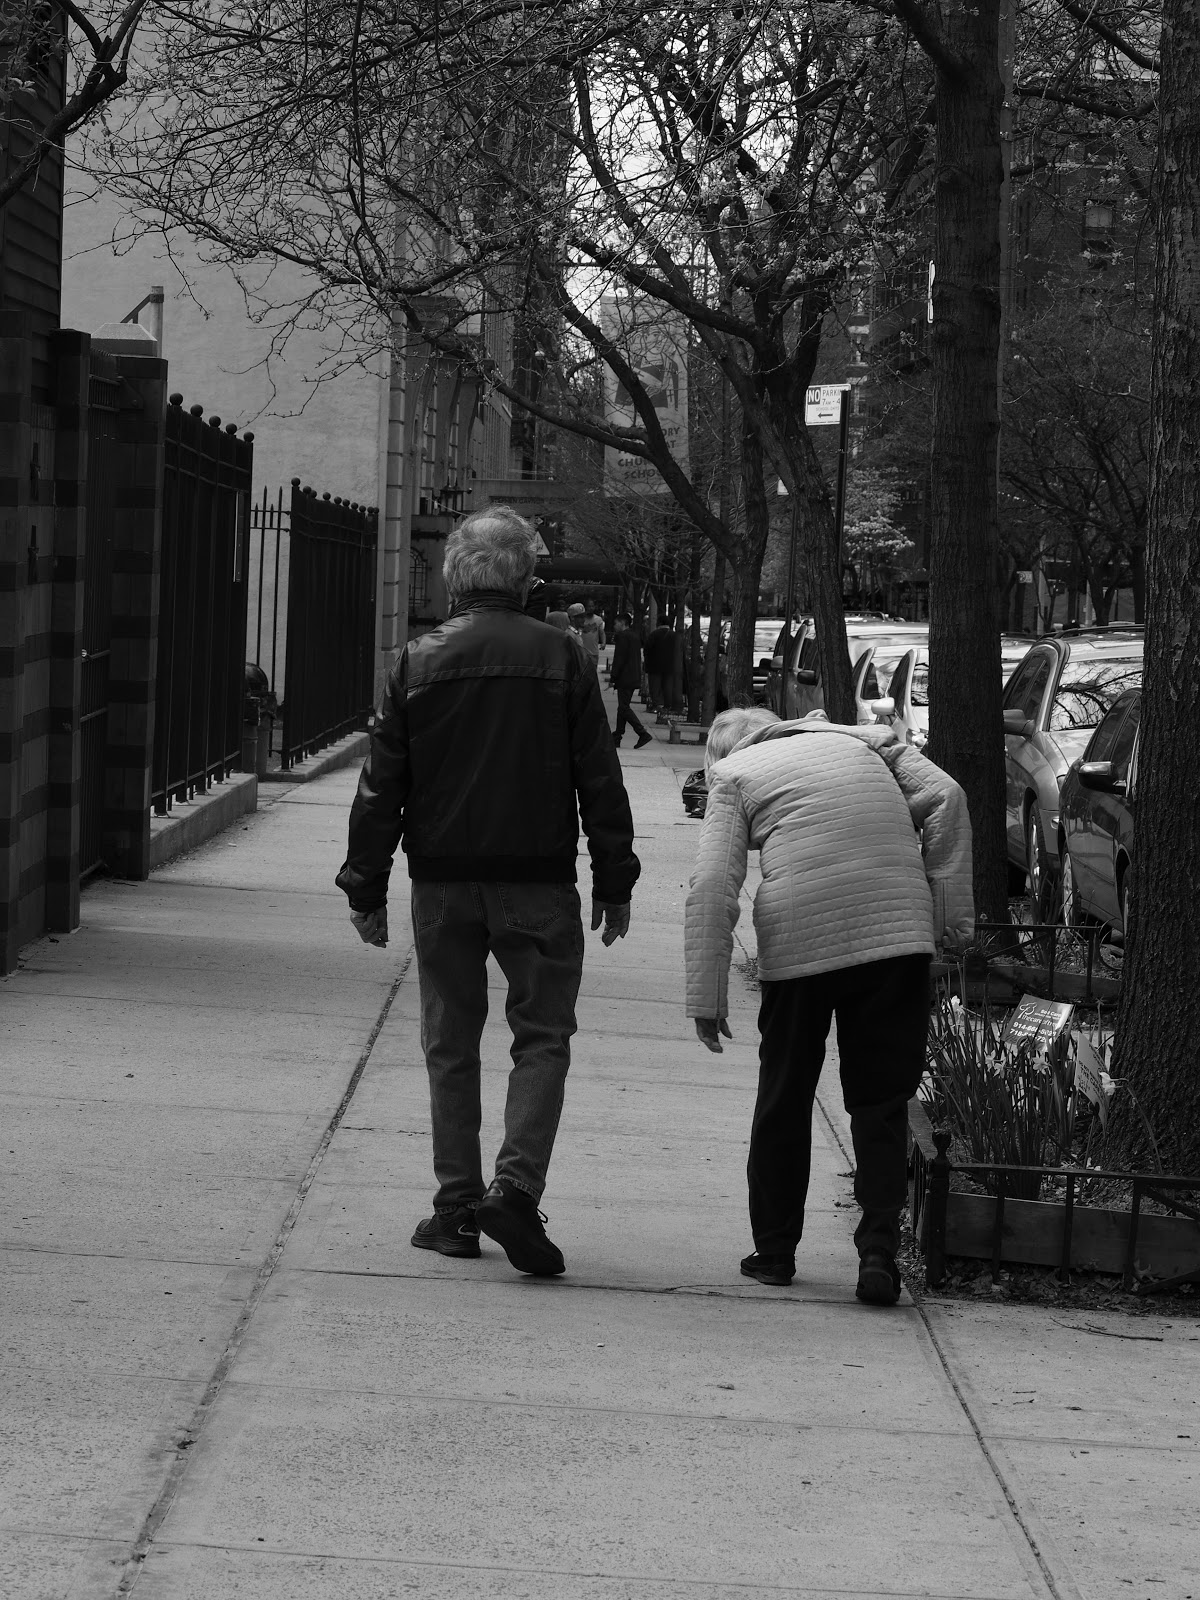 Dowager's Hump, #dowagershump #aging #nyc #frombehind 2014